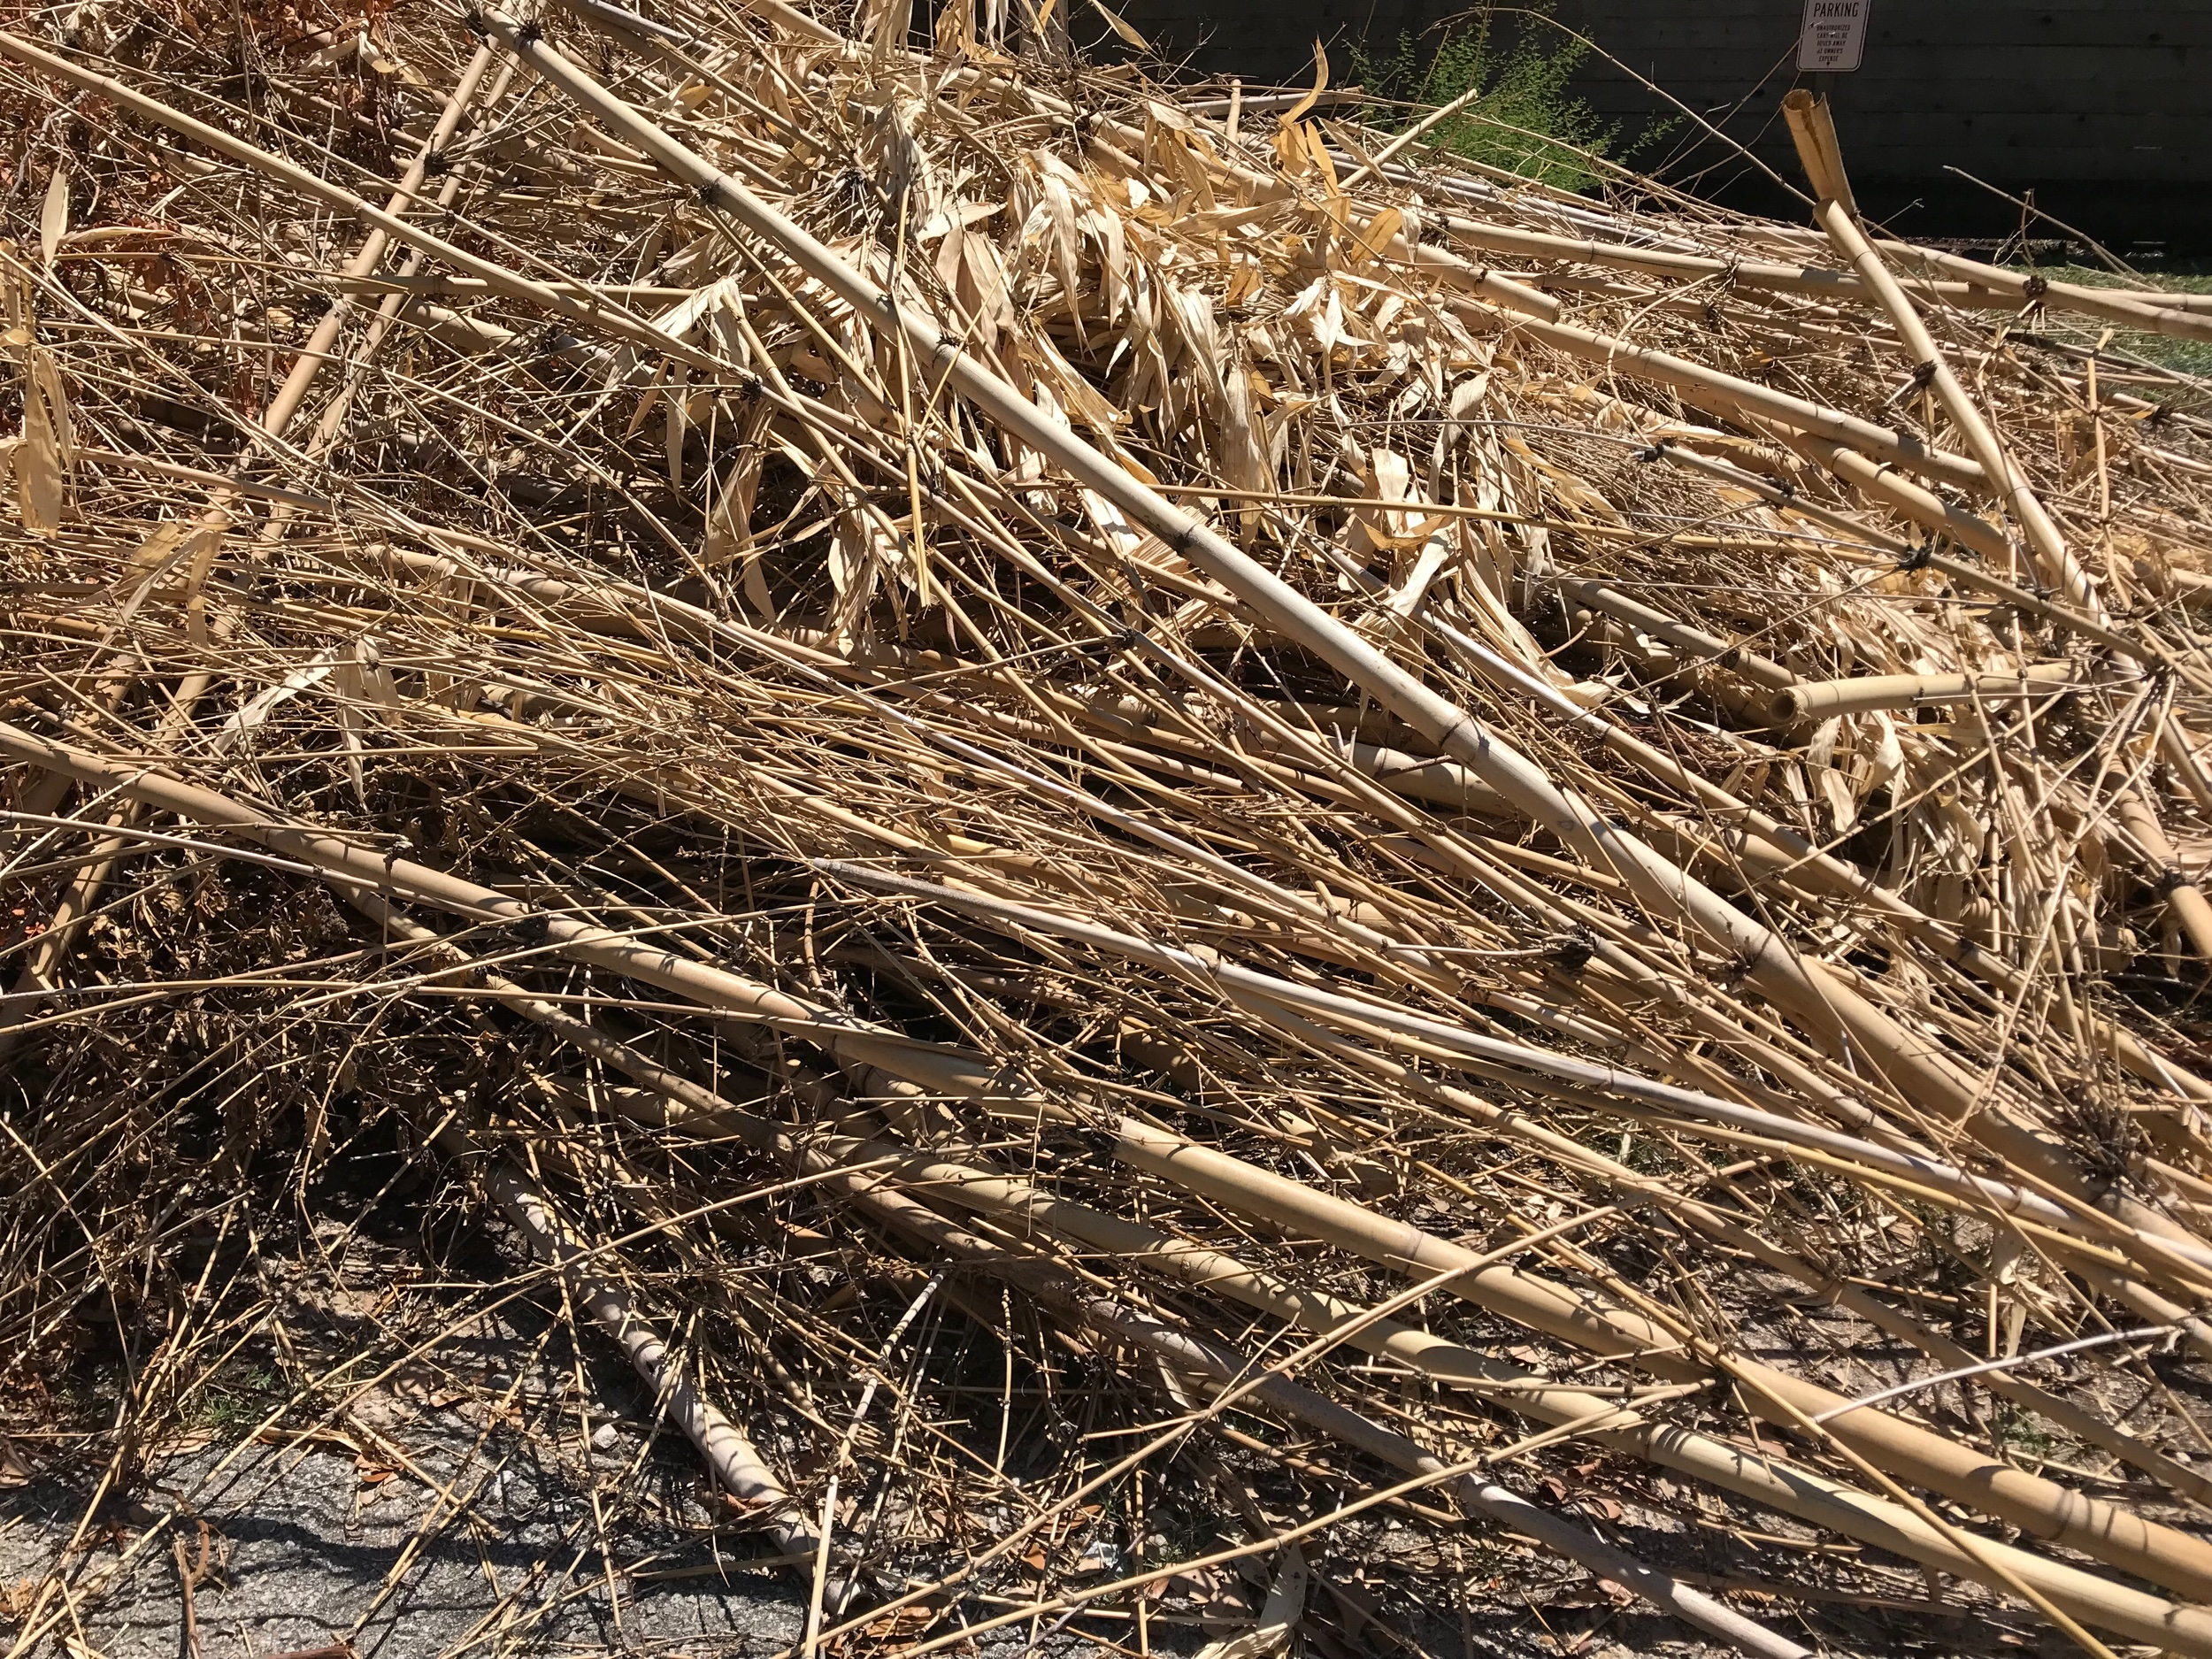 Leaving I saw this huge pile of bamboo waiting for the city of Houston's trash collectors to pick it up. I immediately text Doug Welch to ask for permission to rob it of enough sticks to make done native bumble bee houses.